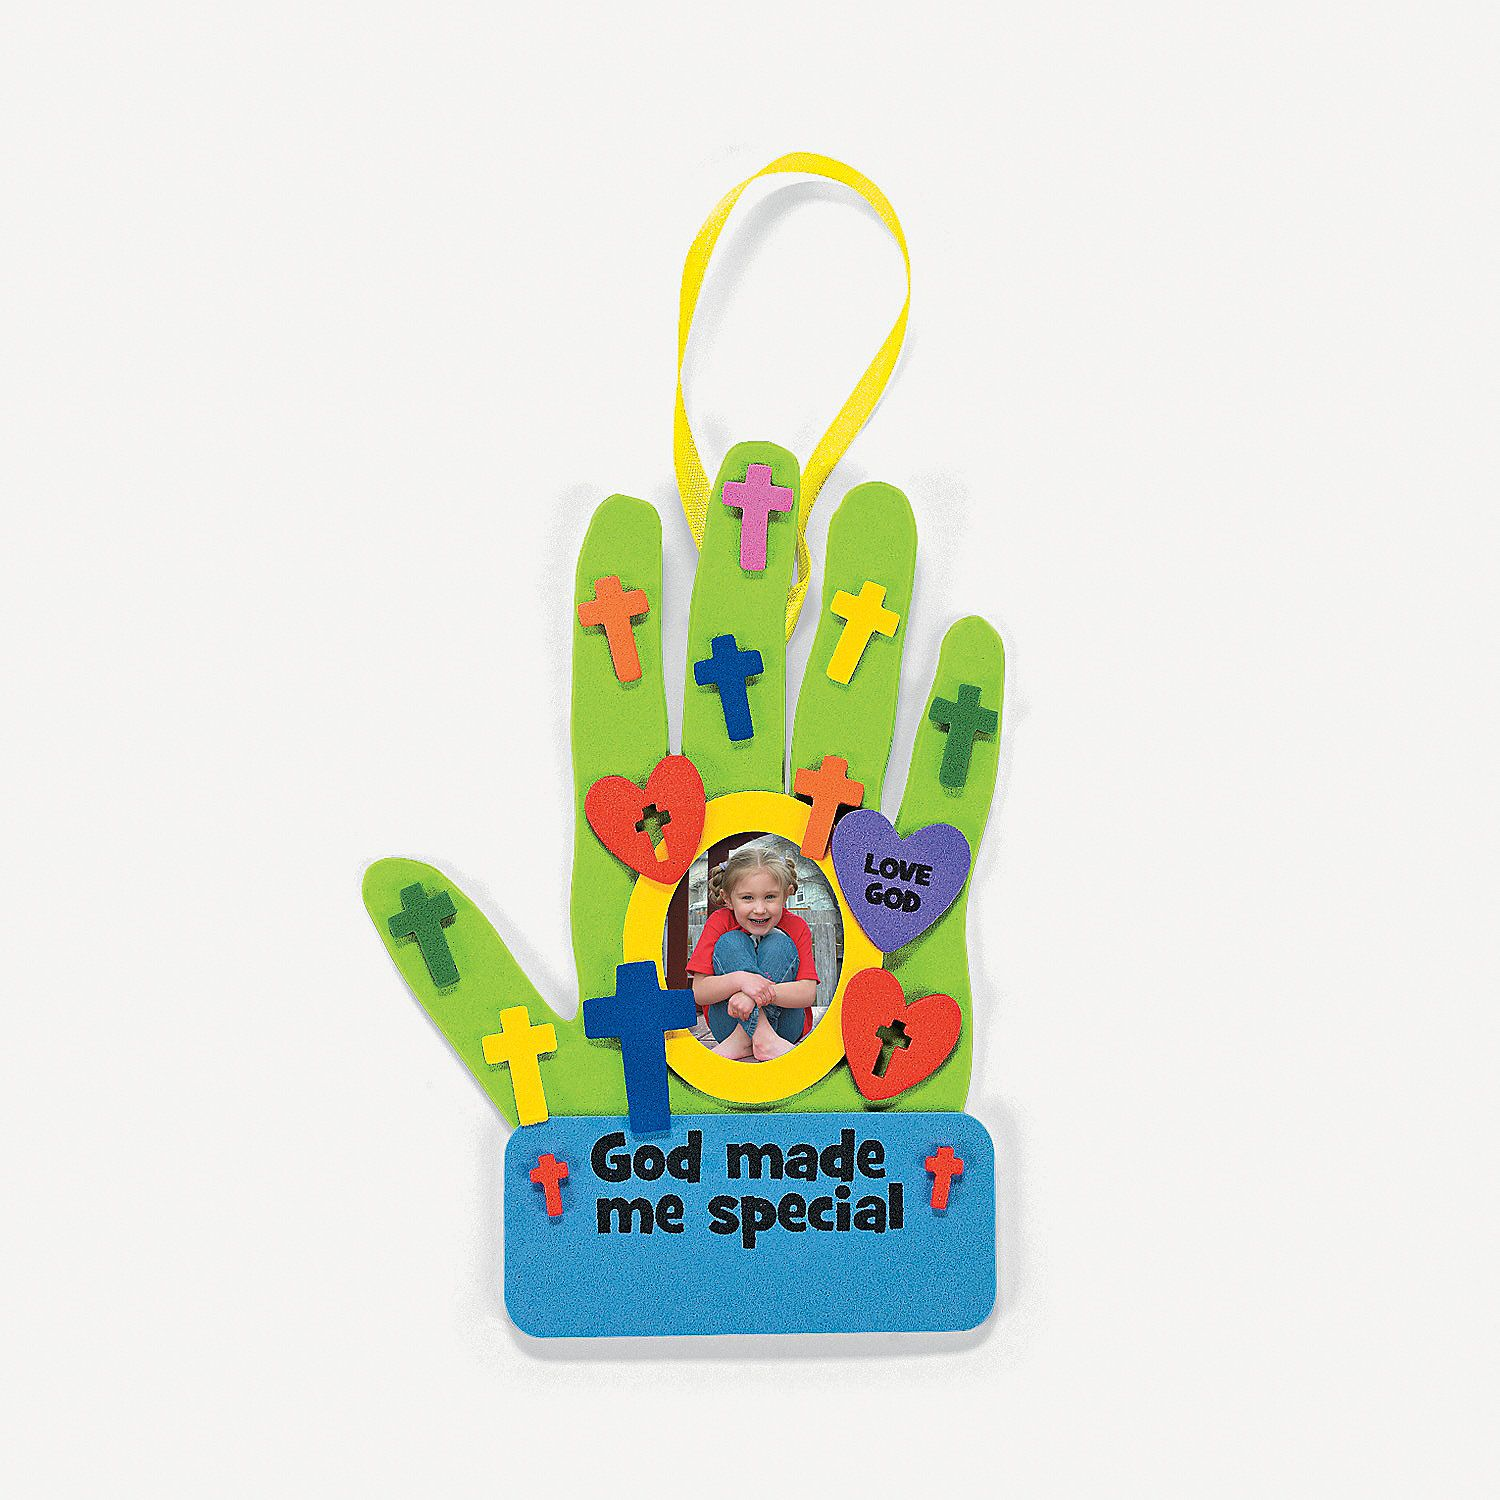 Craft kits for 3 year olds - Find This Pin And More On Vicki Comm Church 3 Year Old Sunday School Class